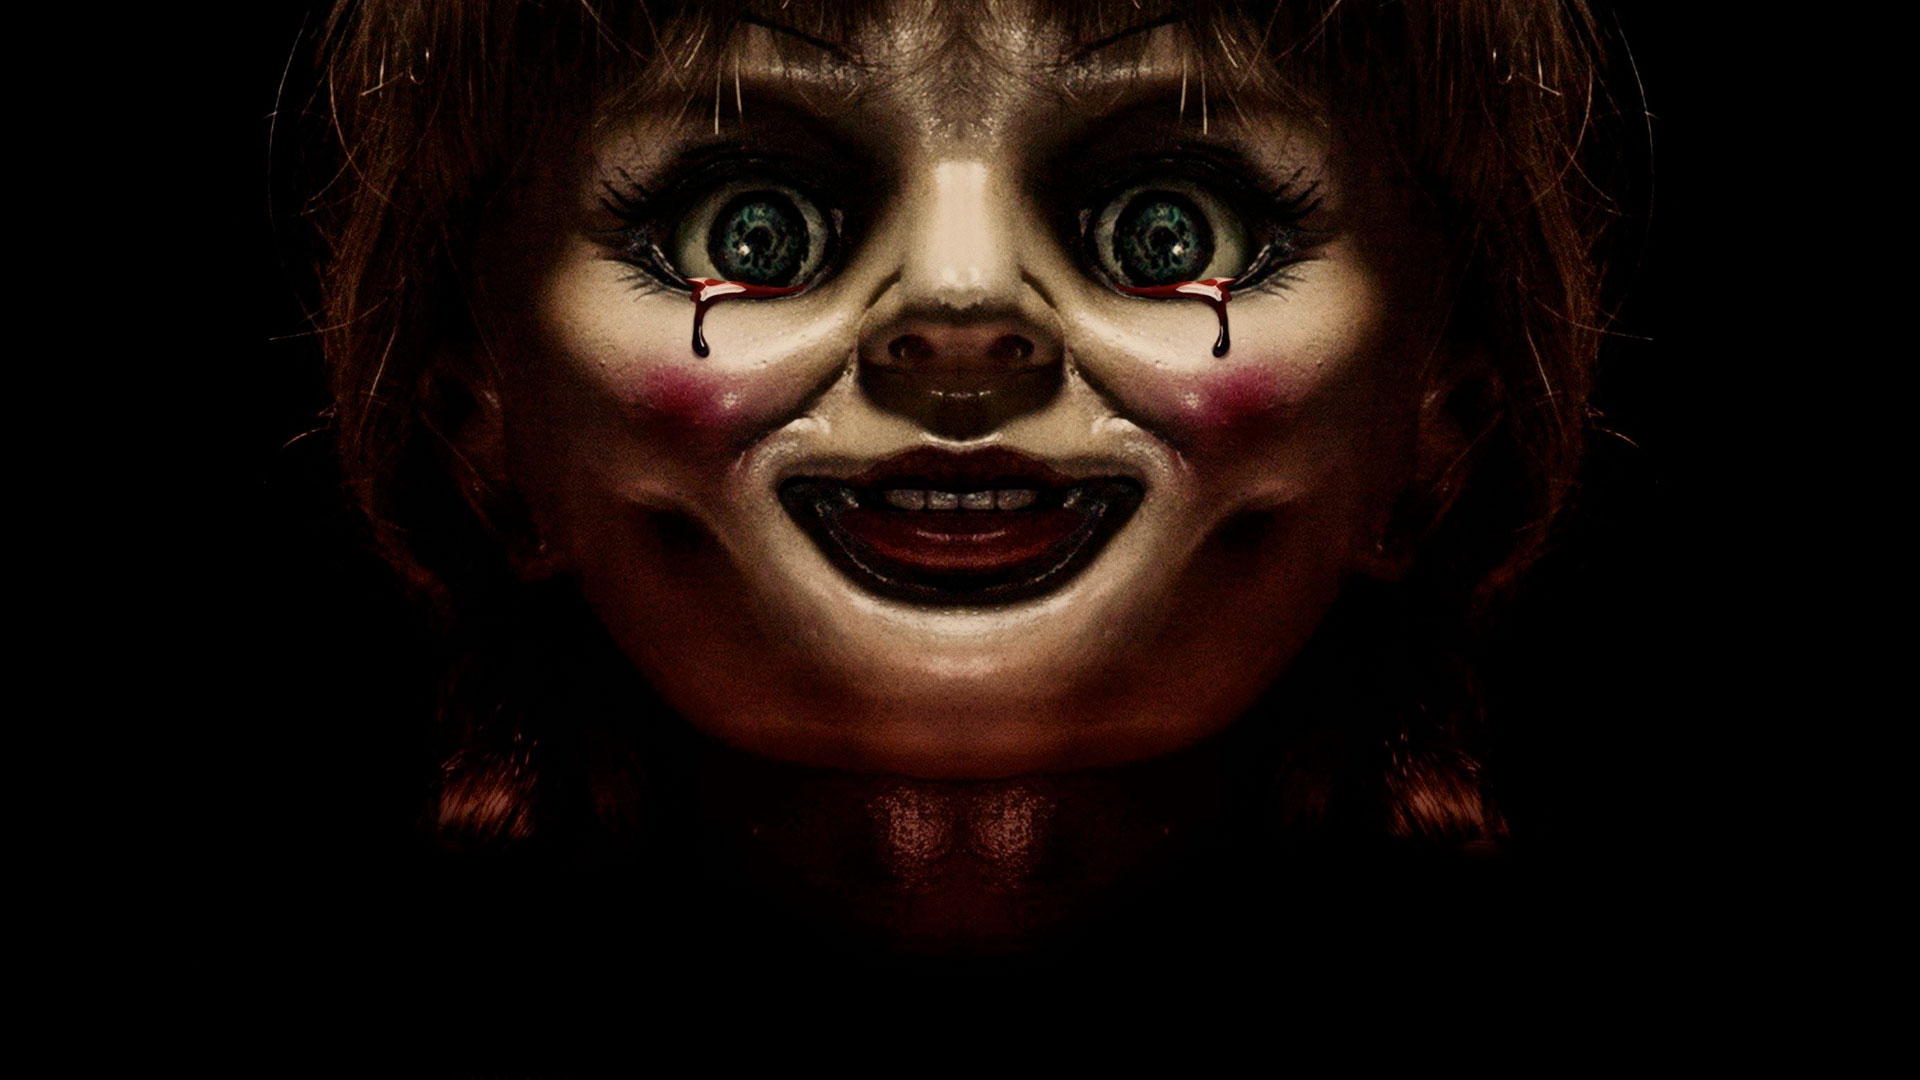 Galerry Annabelle 2 Creation 2017 Wallpapers HD Wallpapers